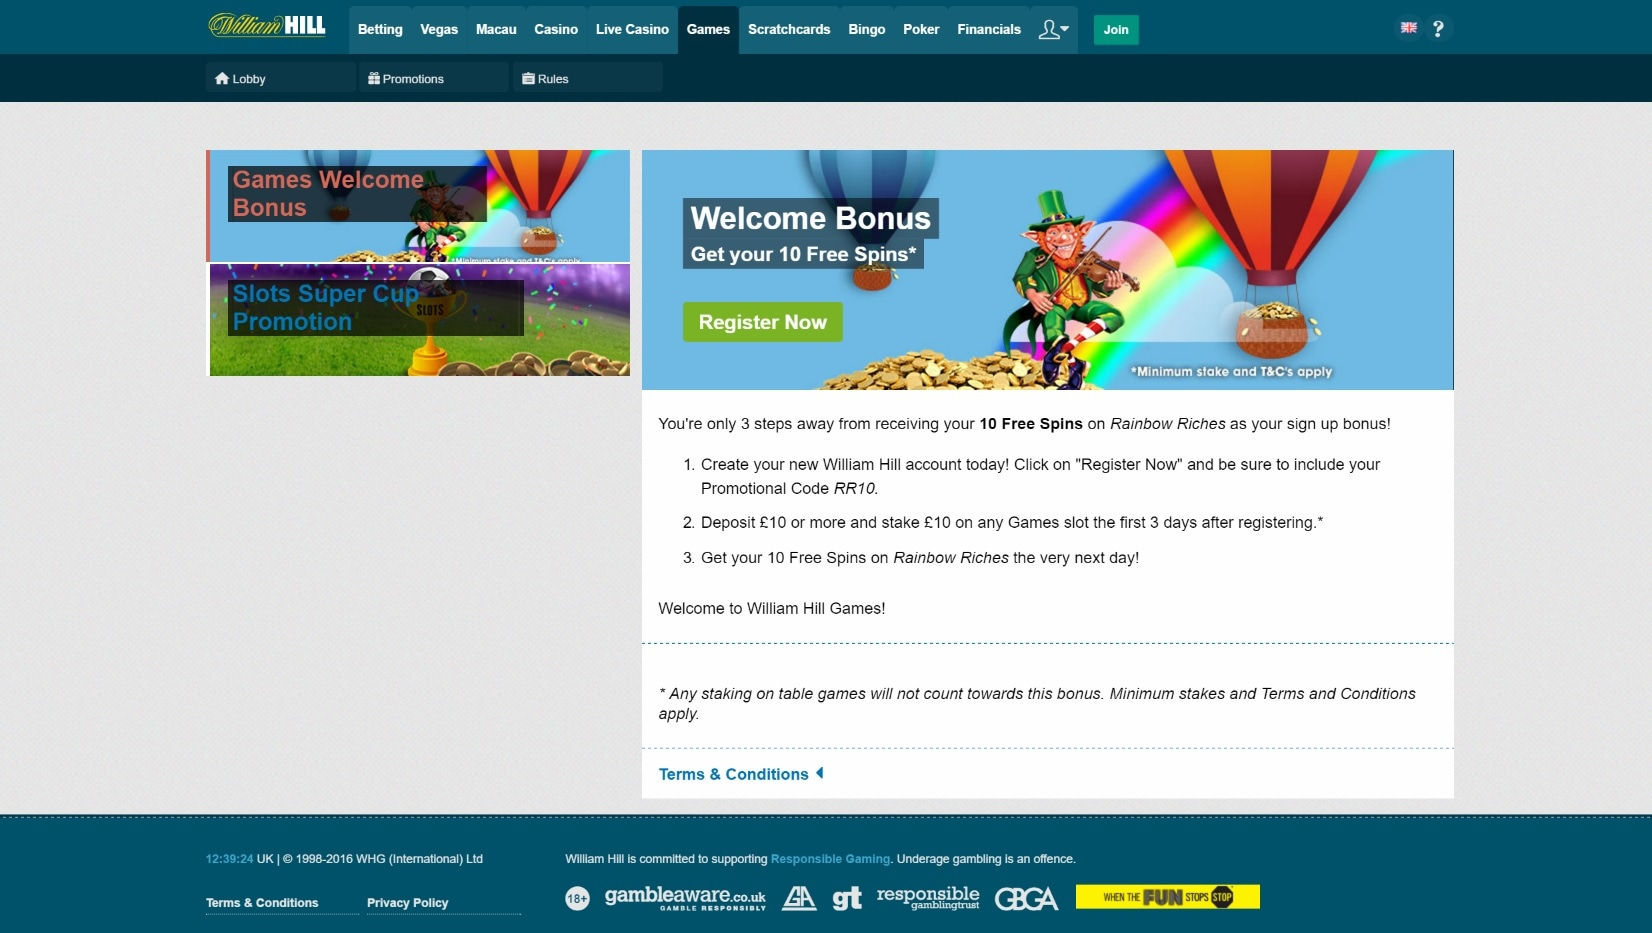 William hill casino bonus terms and conditions gambling online with debit card